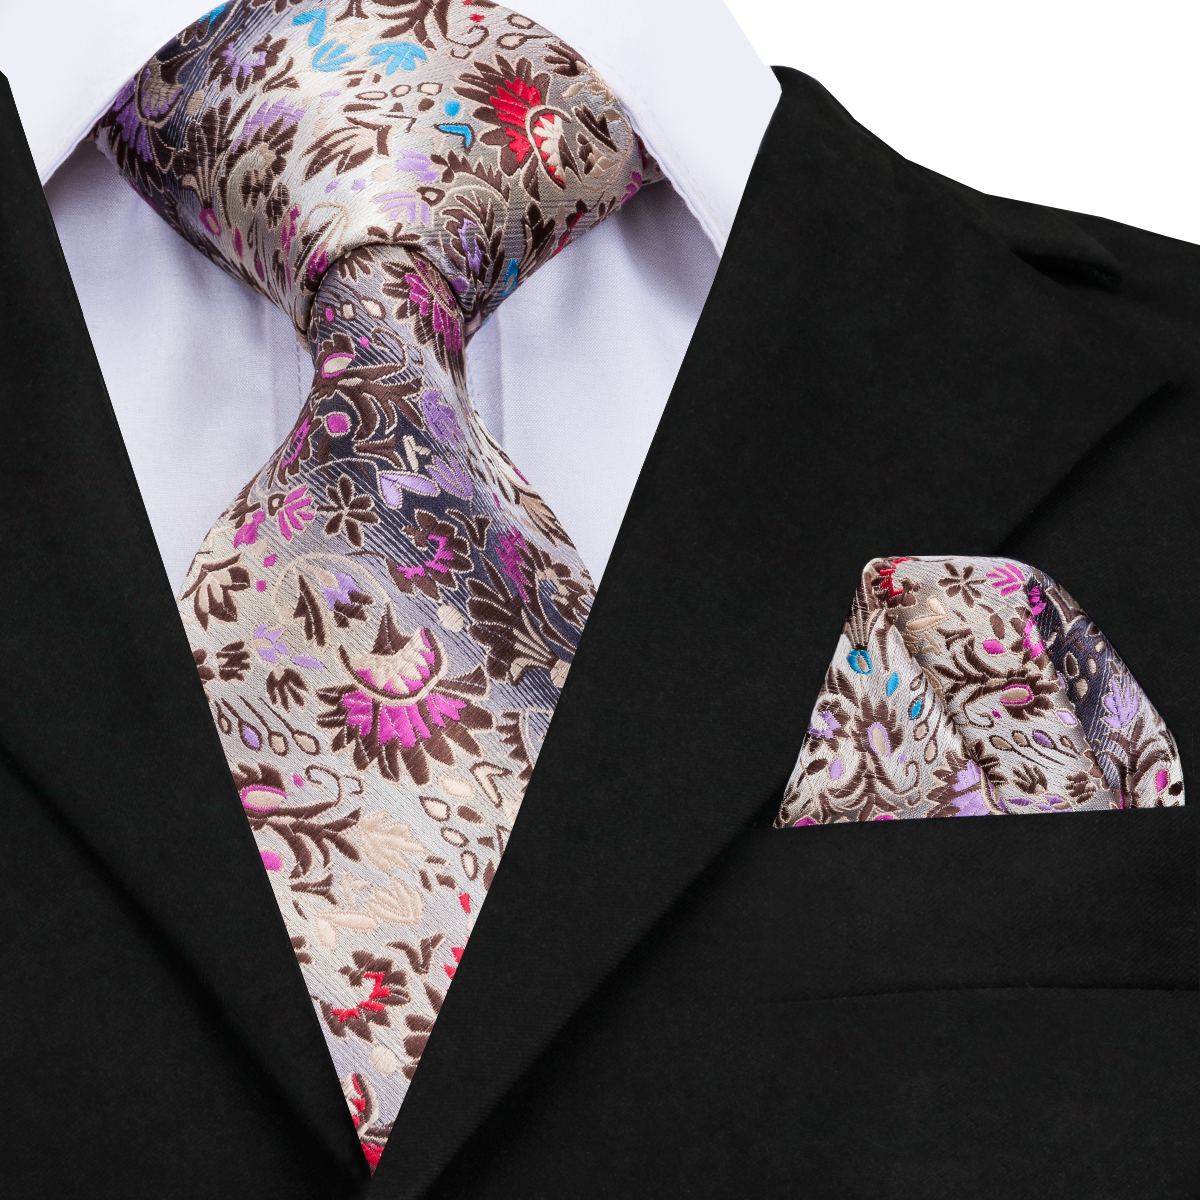 Hi-Tie New Fashion Floral Tie Luxury Silk Ties For Men 160cm Long High Quality Mens Ties Cravatas 8cm Wide Male Neck Tie CZ-006